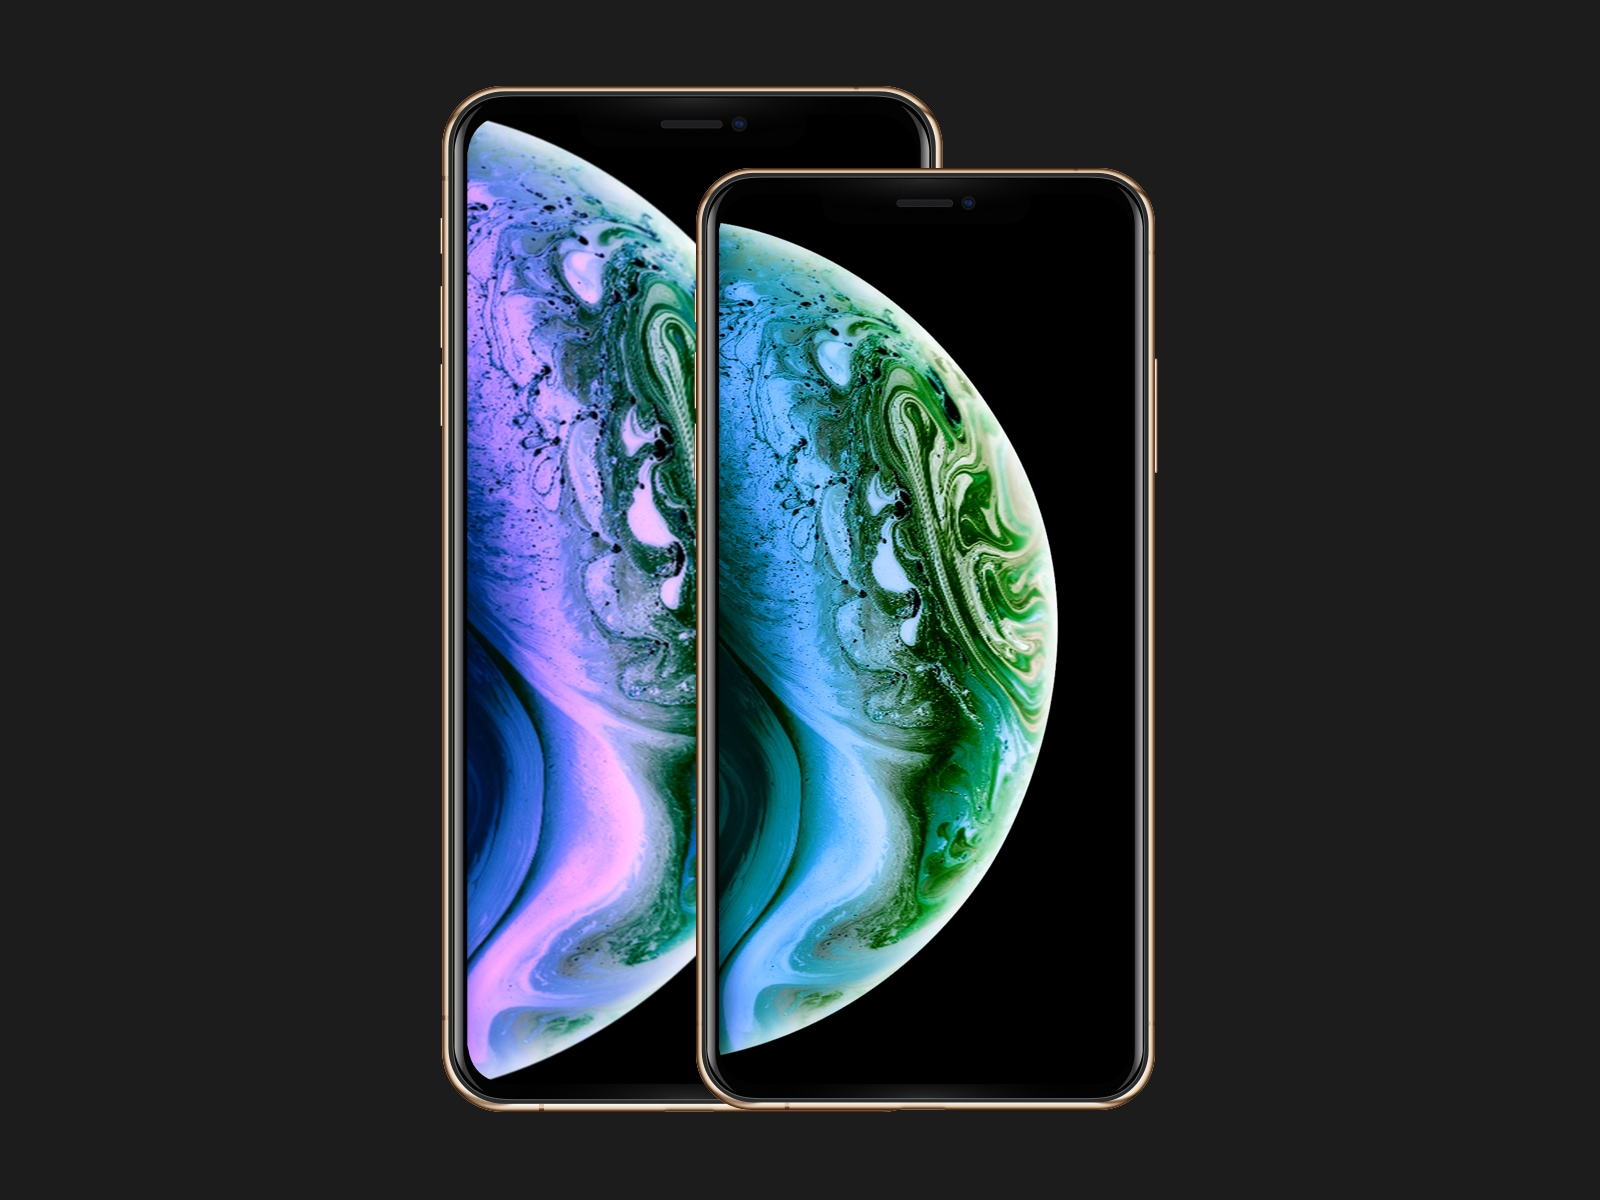 iPhone XS/Max Mockups - Fully-vector based screen mockups for iPhone XS/Max with all the color variants